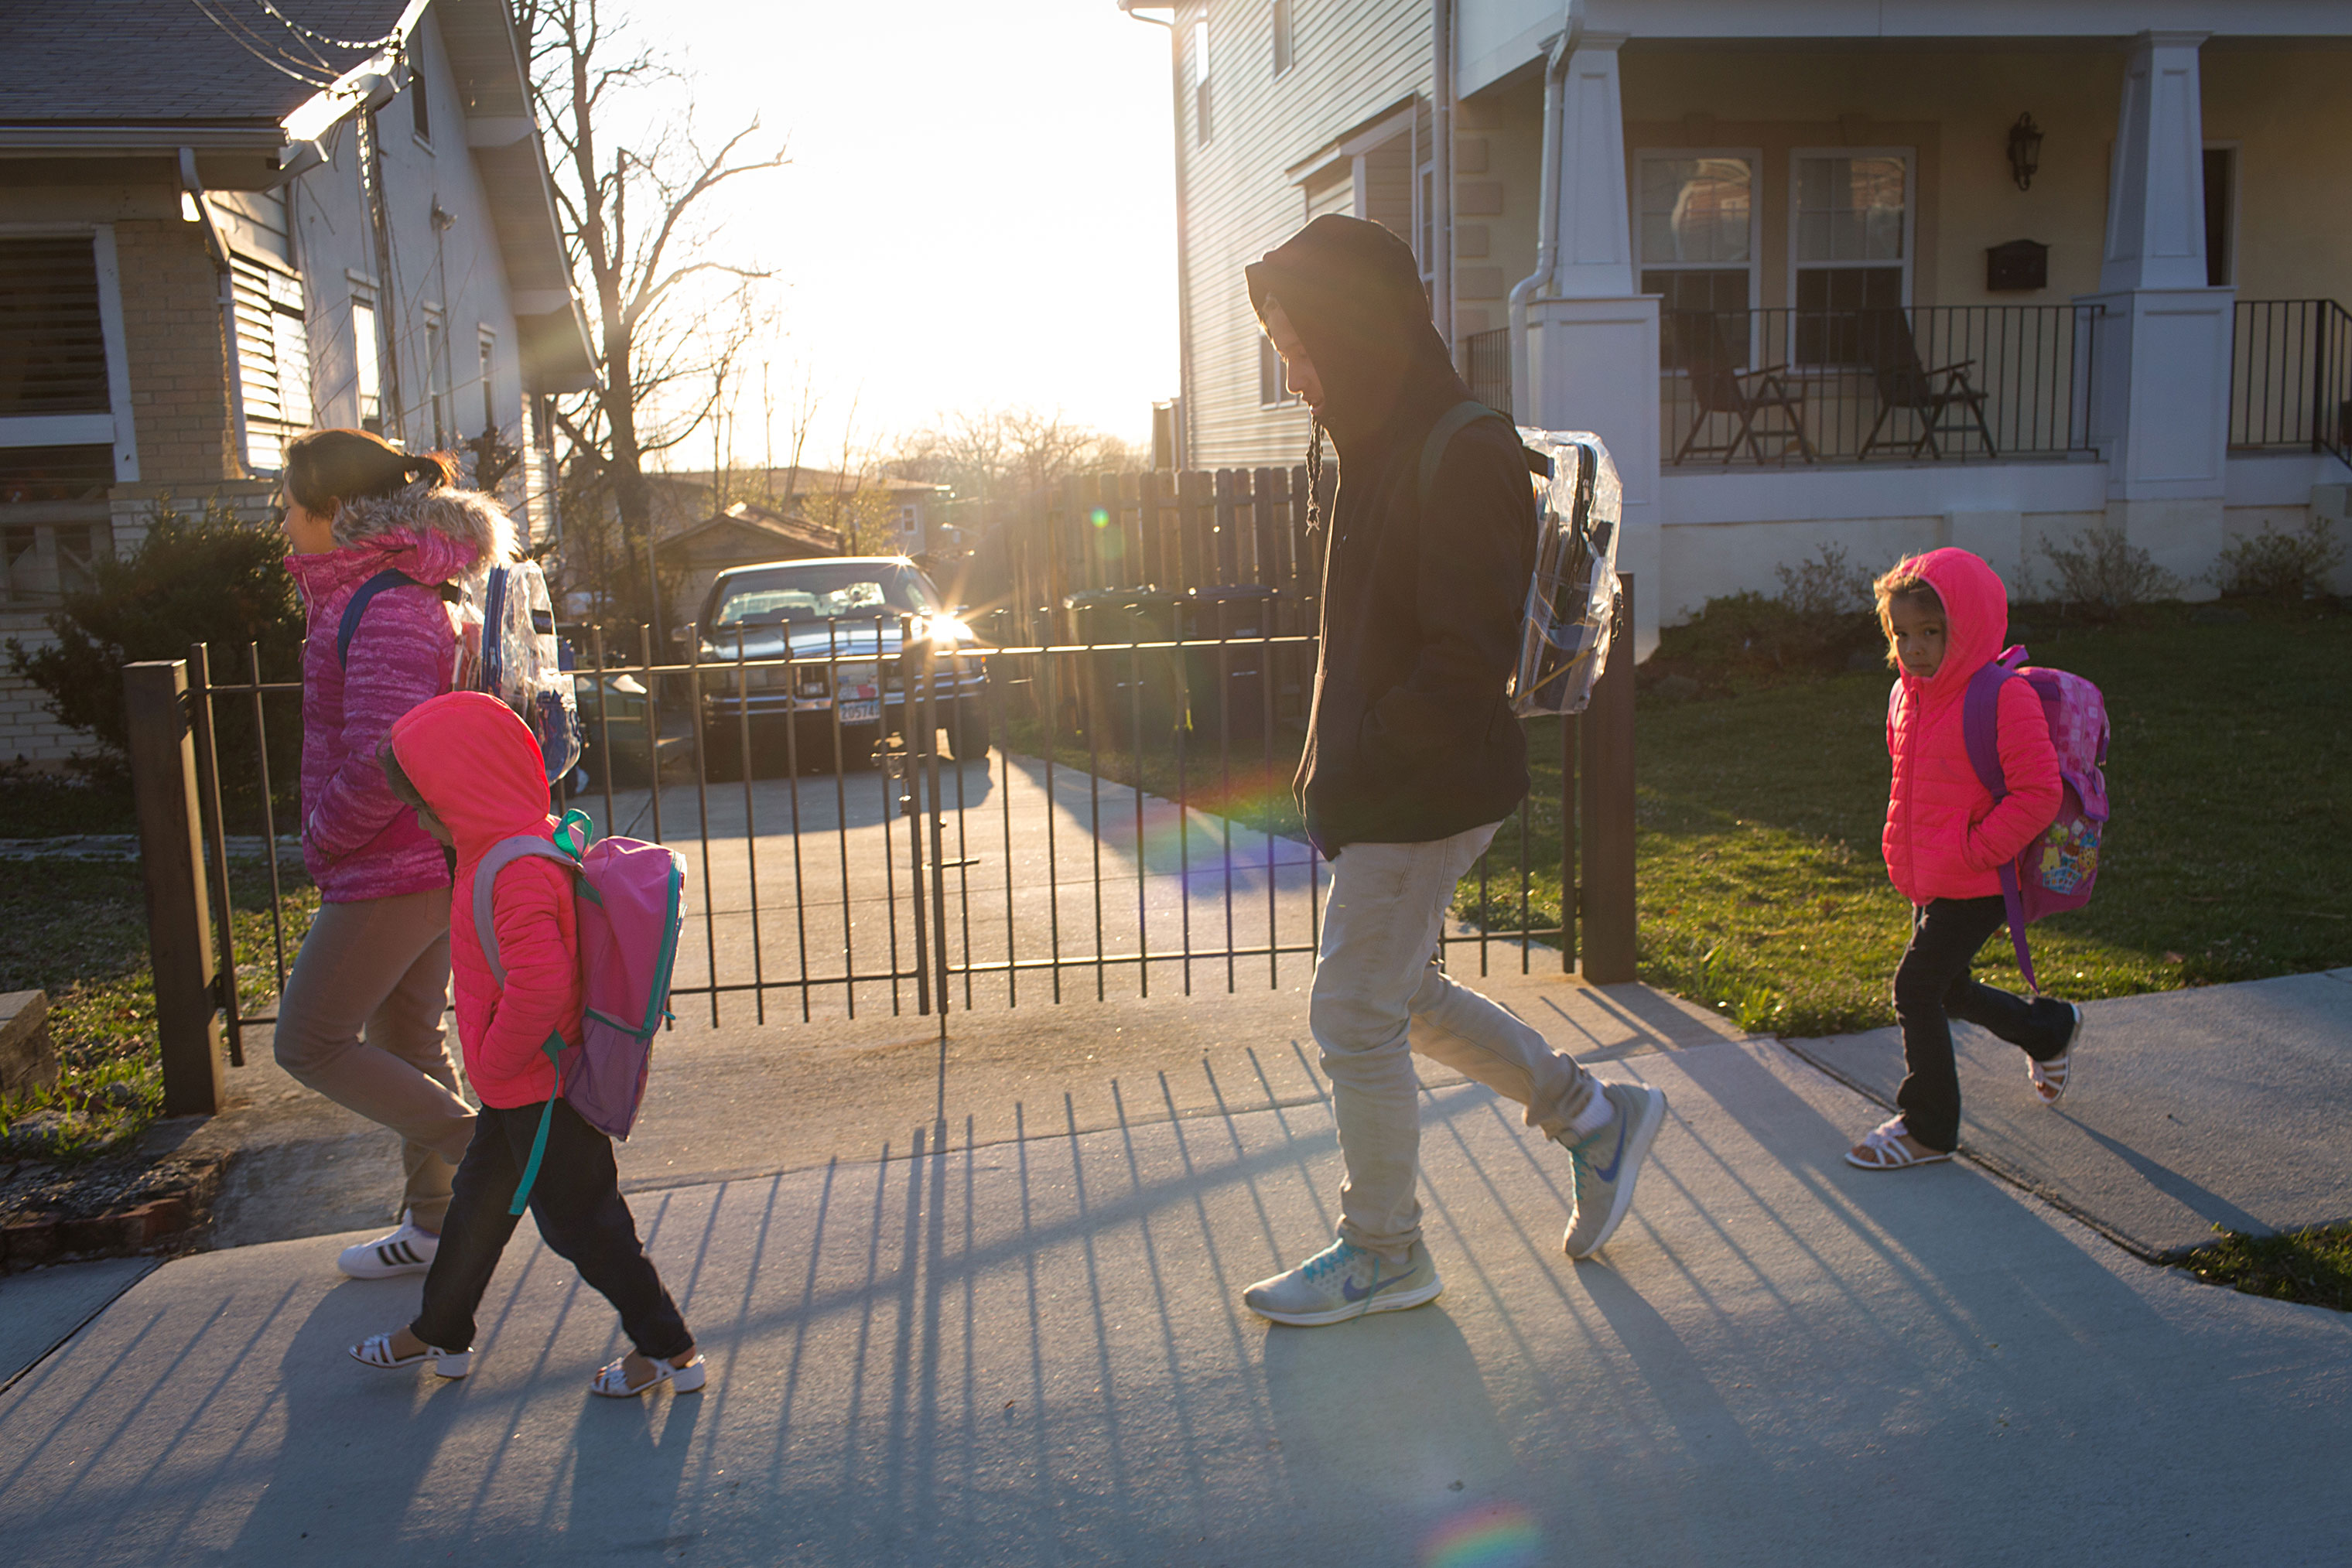 From left, Jeimy, 13, Sayra, 5, Victor, 15, and Cheyli, 5, walk to school on March 25.